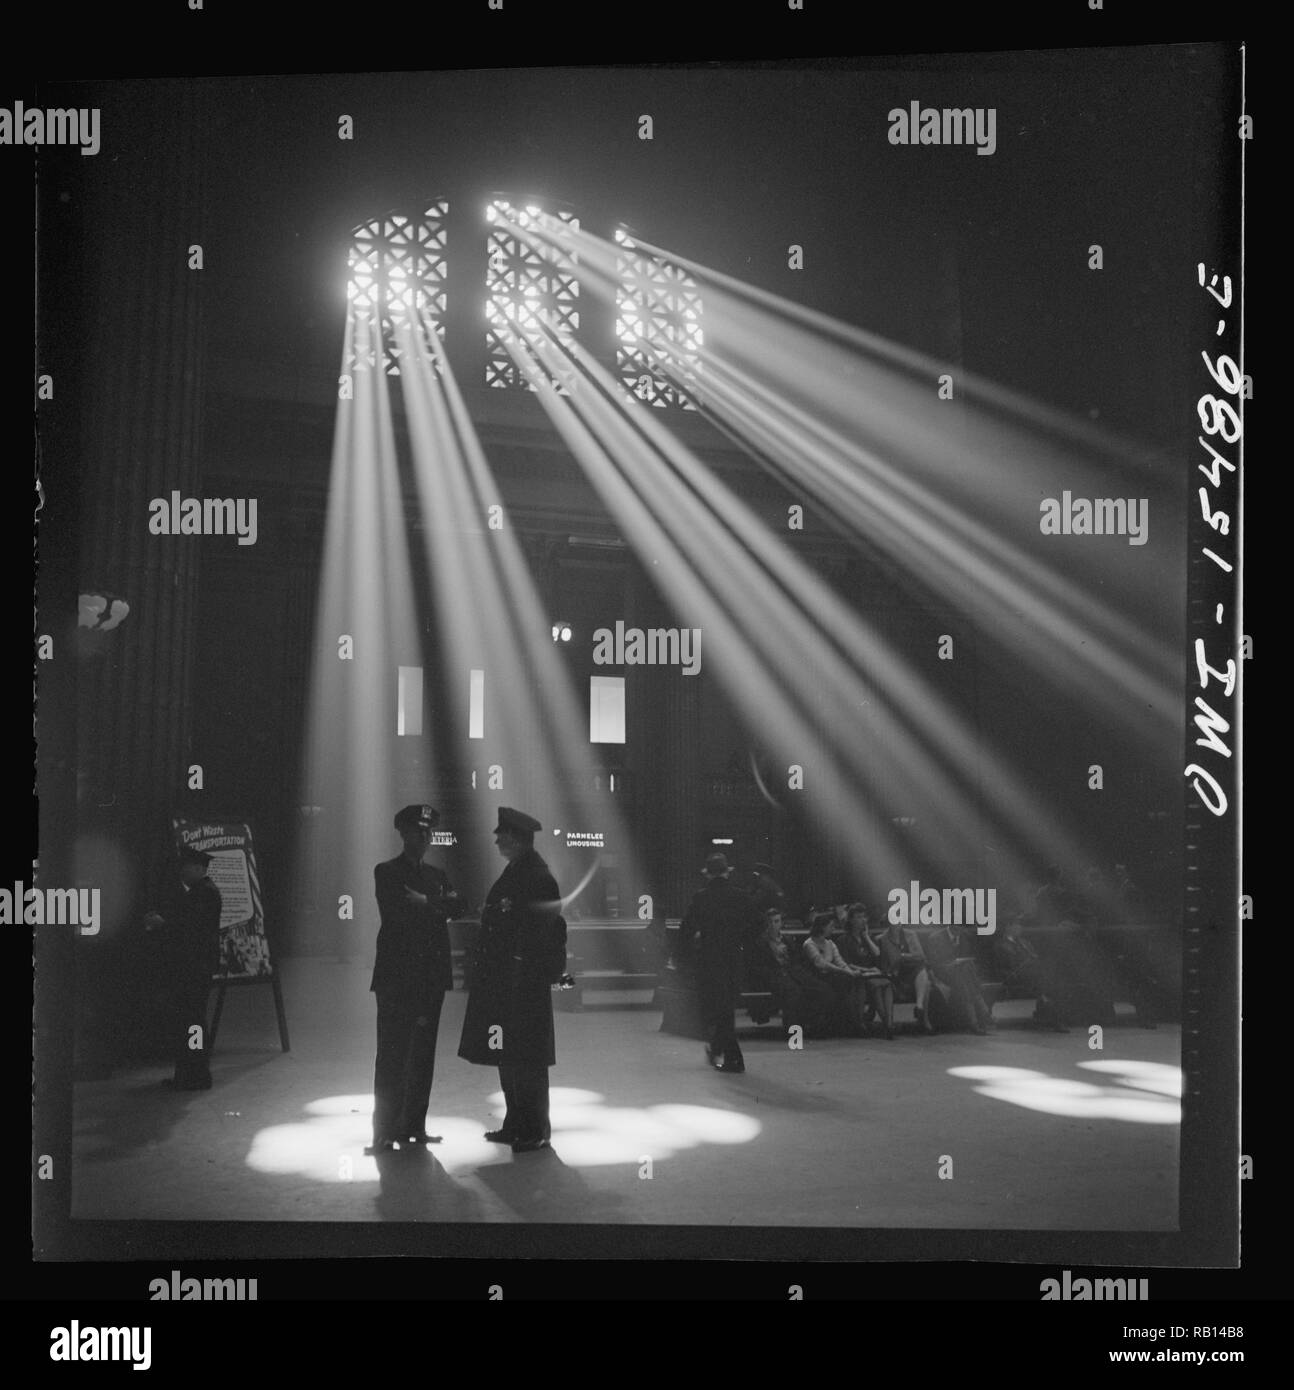 Delano, Jack, photographer. Chicago, Illinois. In the waiting room of the Union Station 1943.jpg - RB14B8  - Stock Image